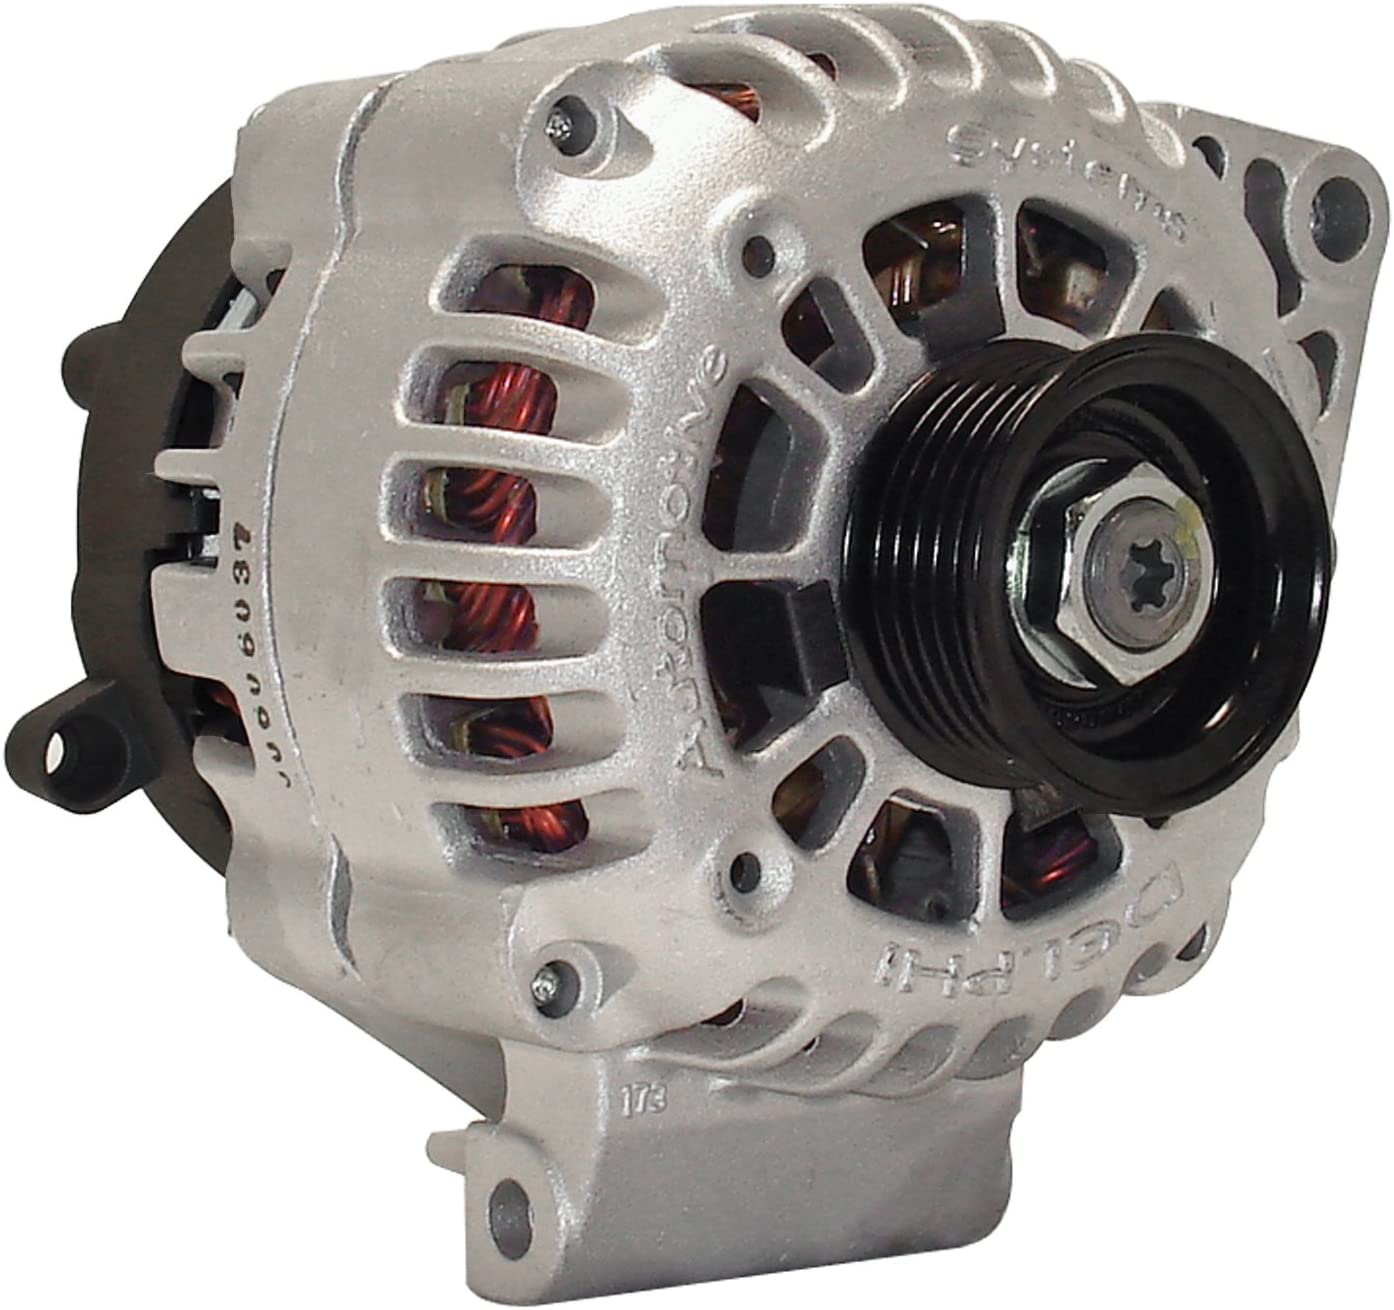 ACDelco 334-2522A Professional Alternator, Remanufactured